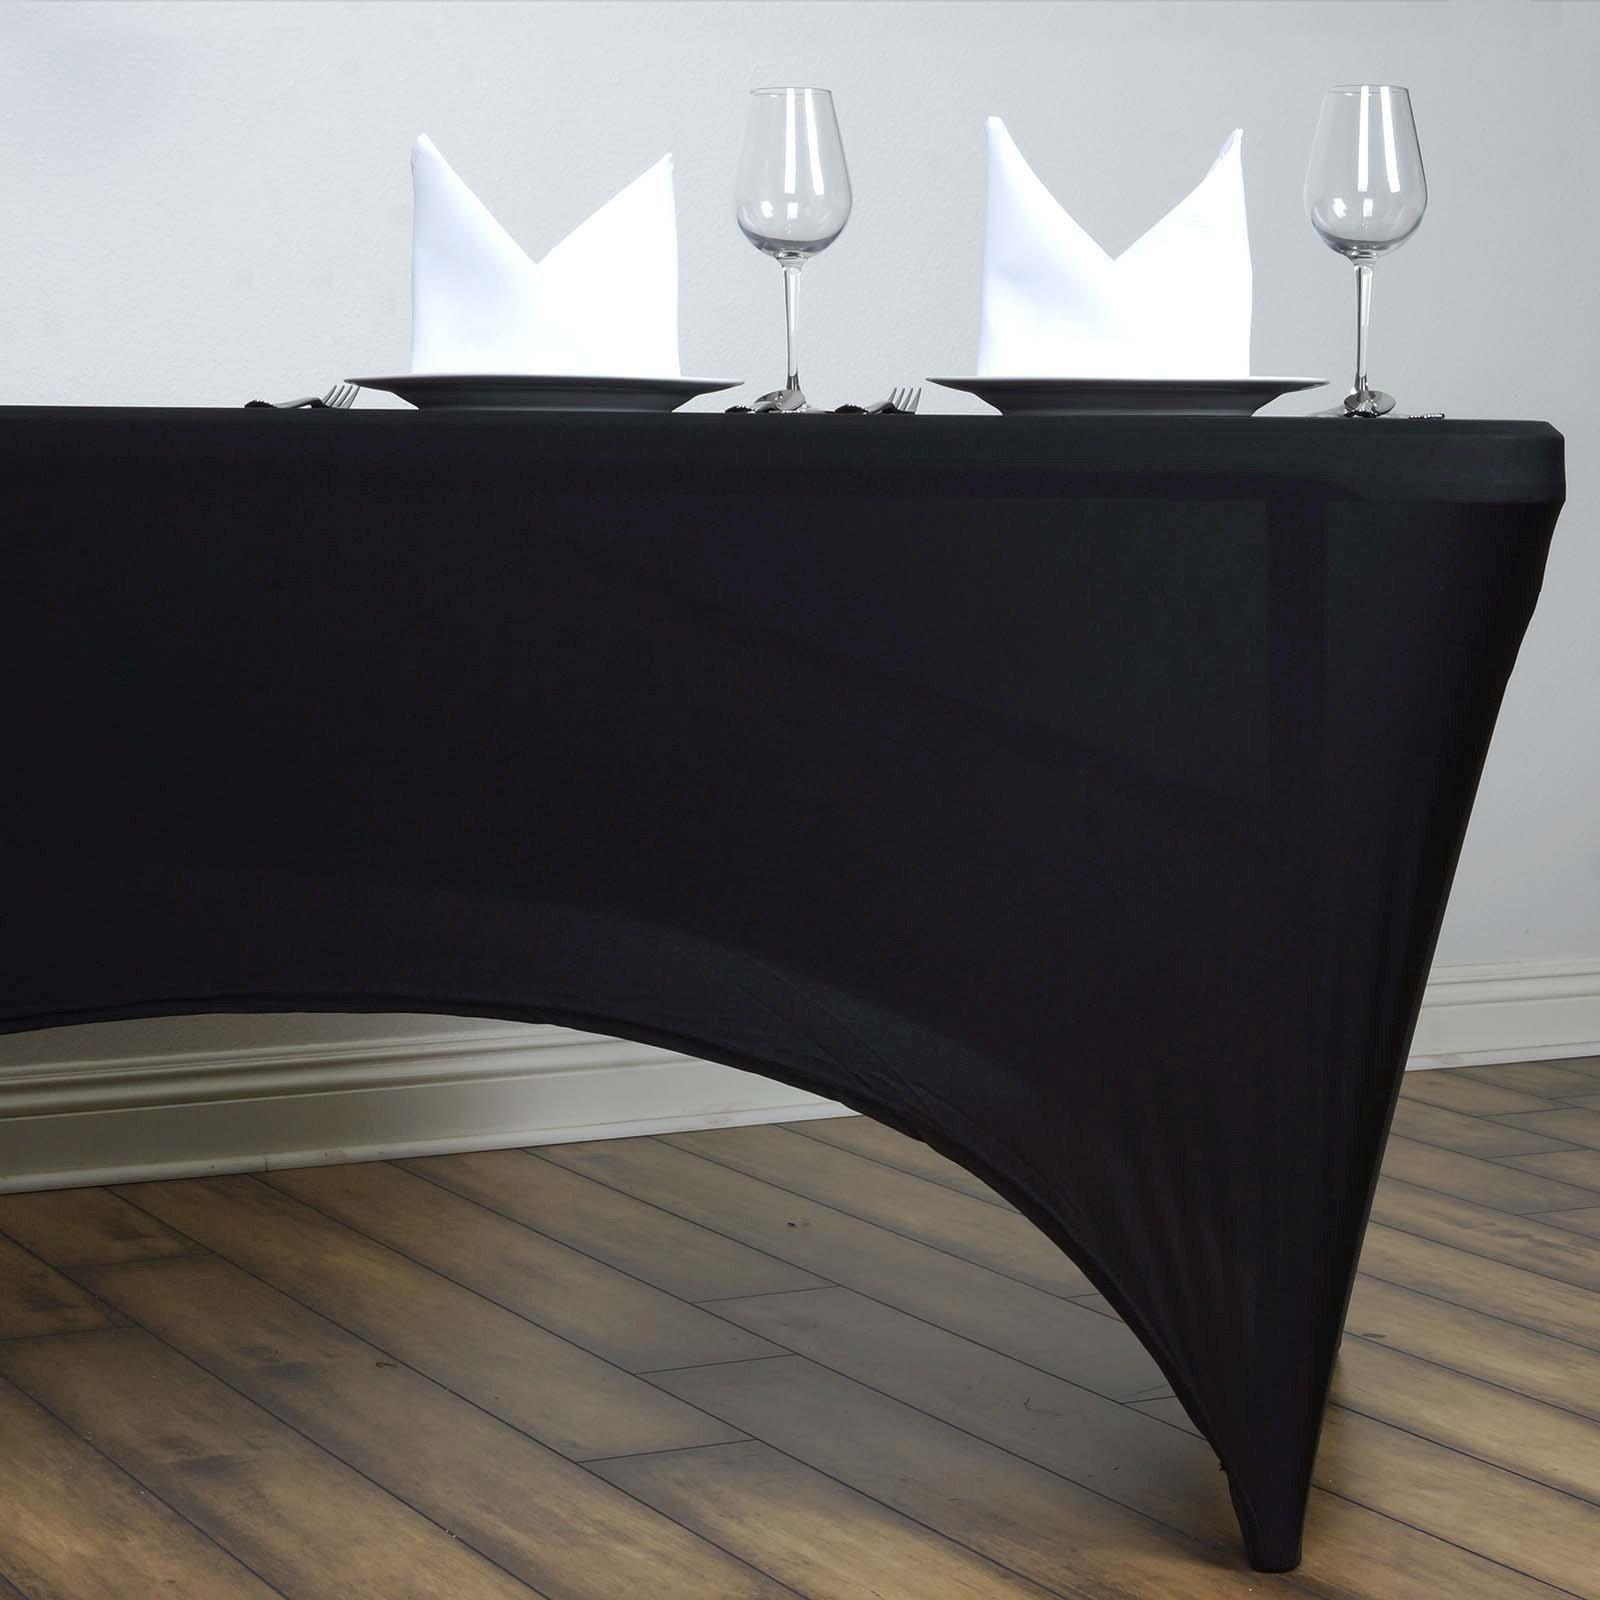 6 Ft Rectangular Spandex Table Cover Black